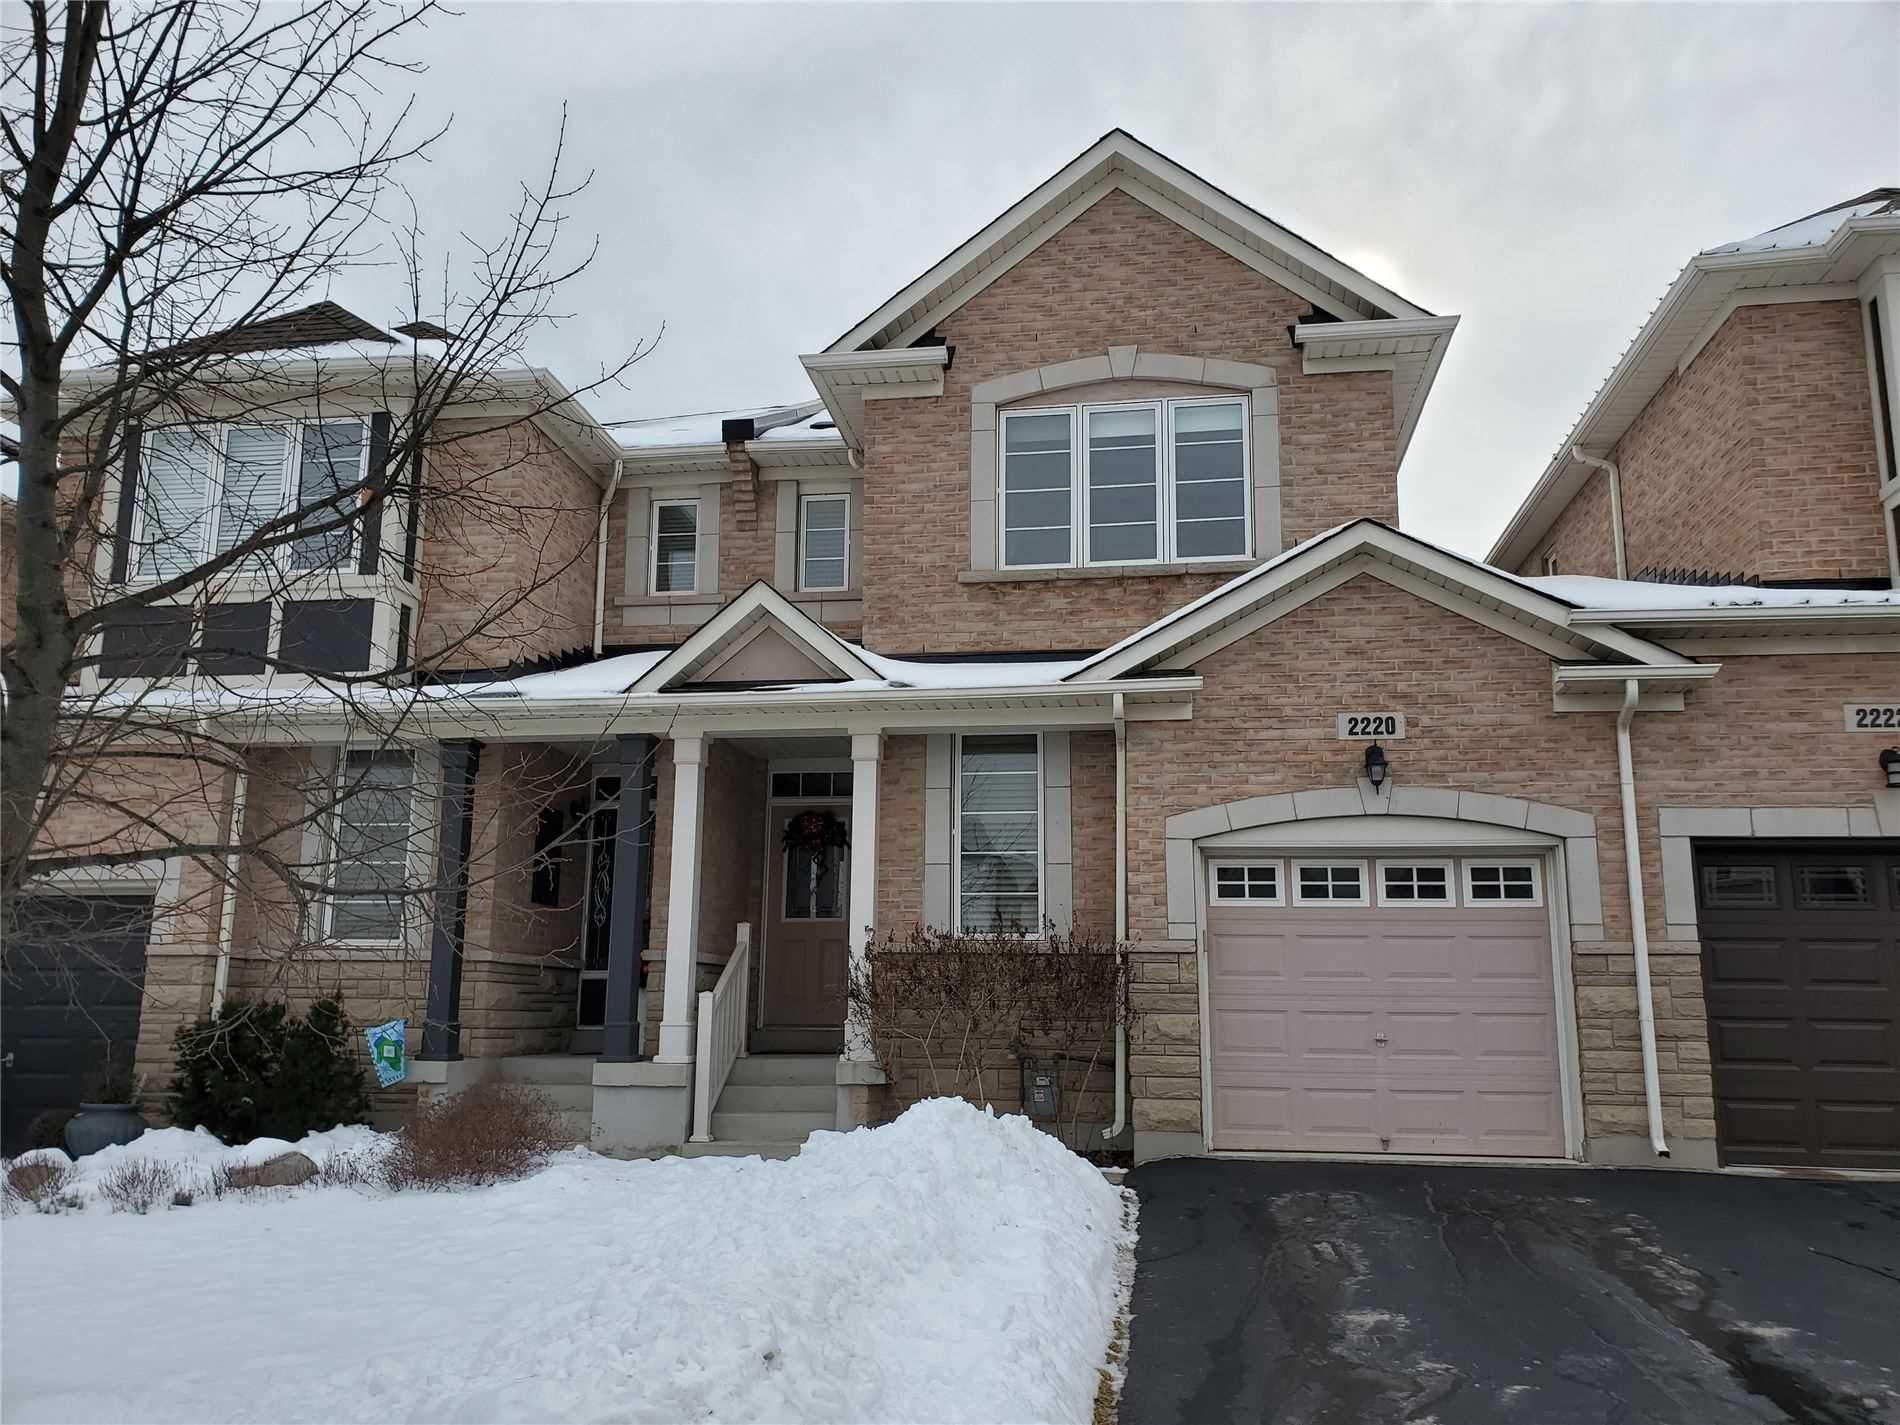 2220 Whitworth Dr, Oakville, L6M0B4, 3 Bedrooms Bedrooms, ,4 BathroomsBathrooms,Att/Row/Twnhouse,For Sale,Whitworth,W4676161